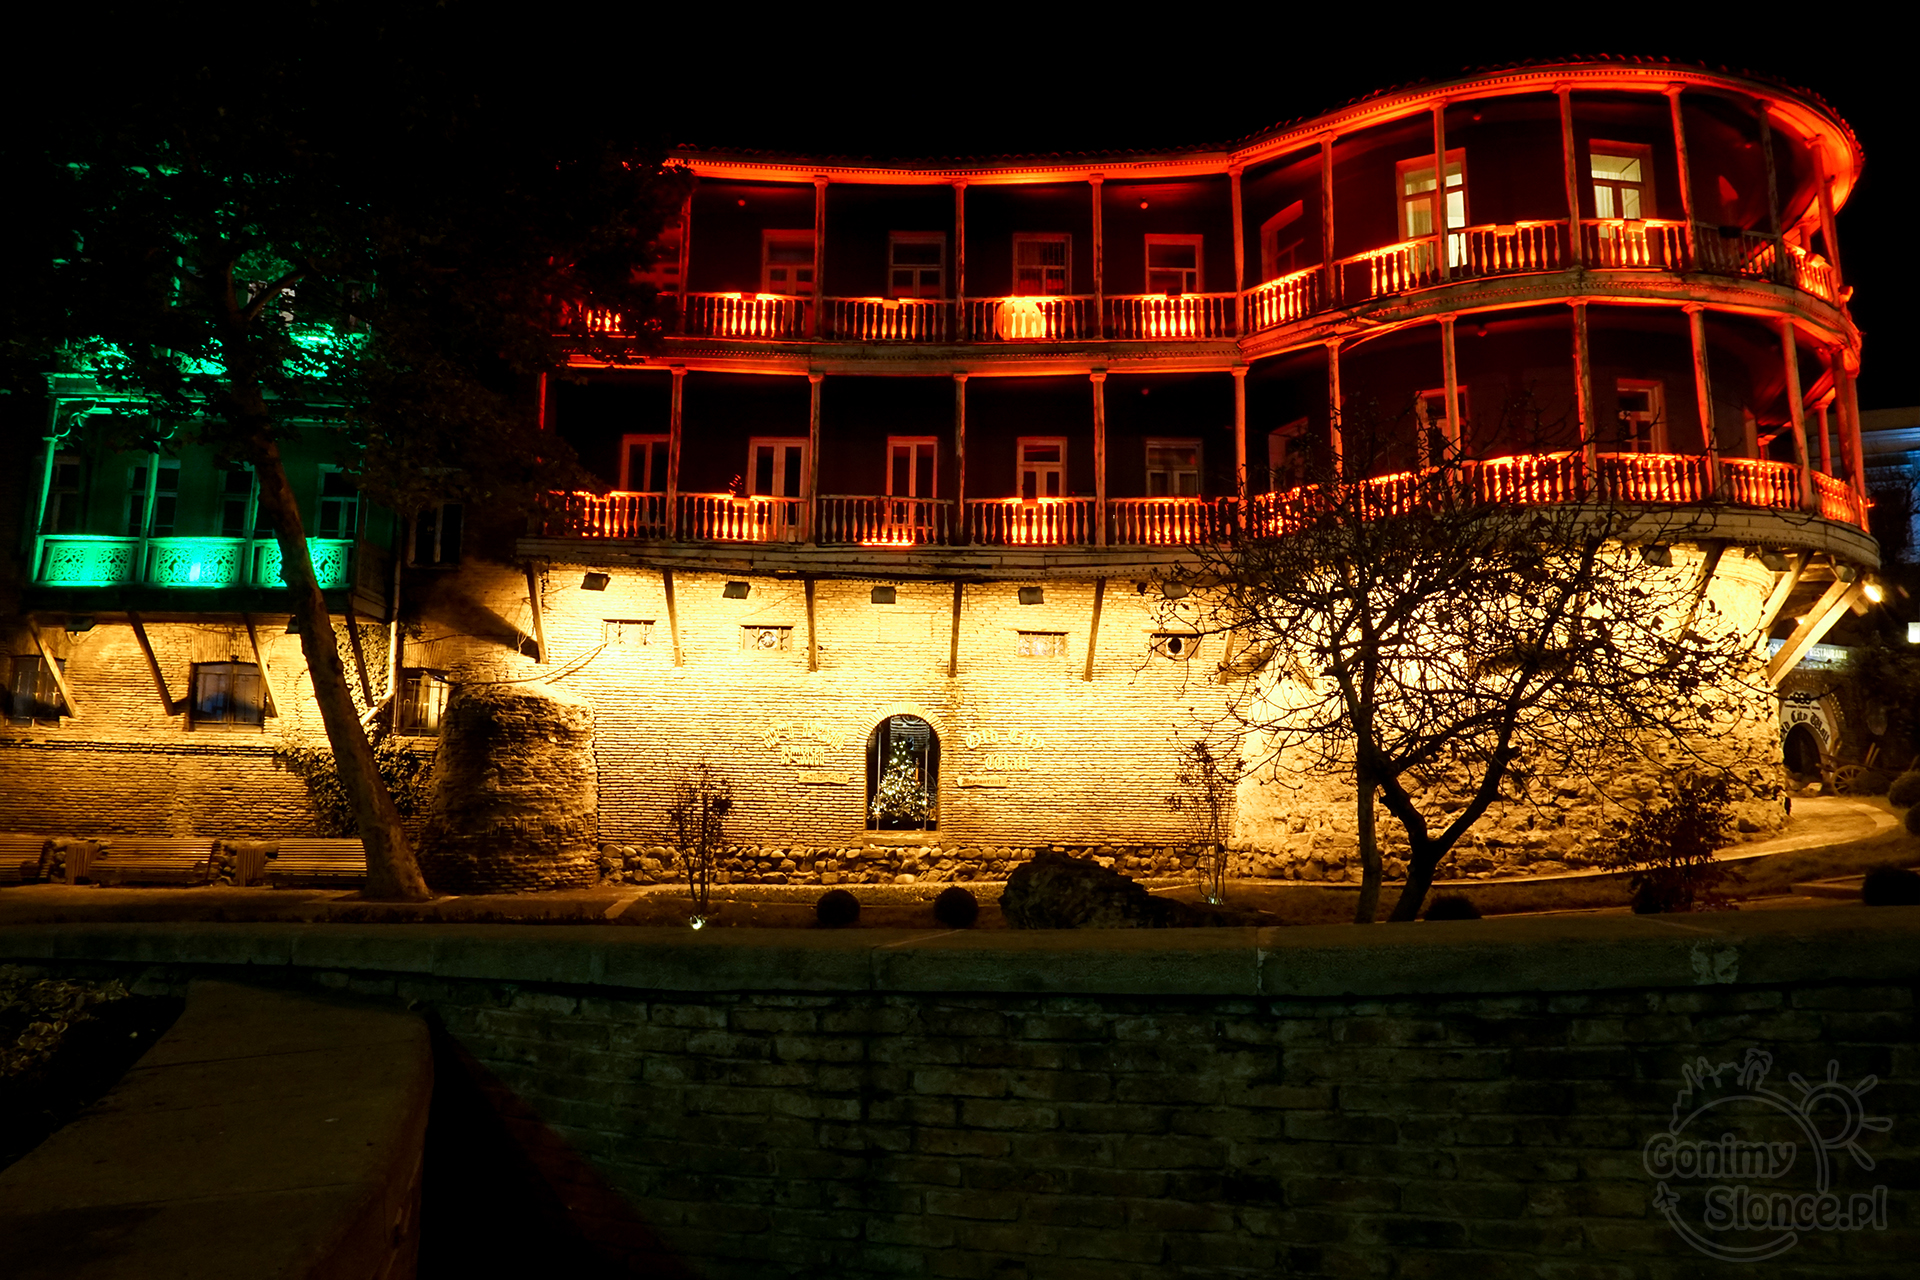 Nocne Tbilisi - Old City Wall